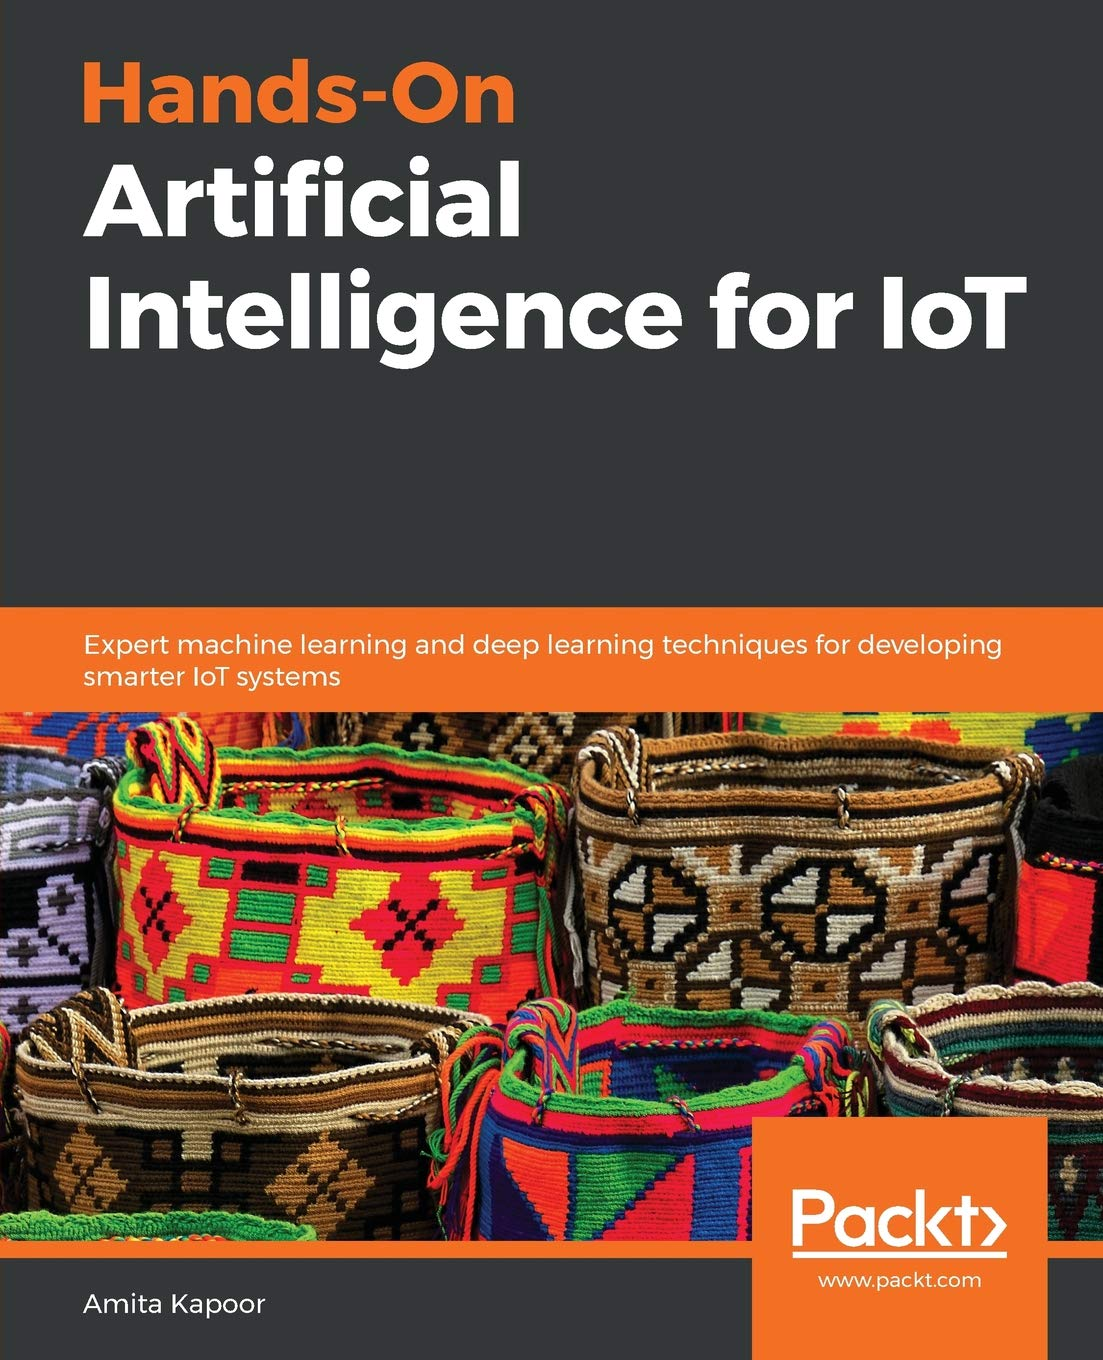 Hands-On Artificial Intelligence for IoT: Expert machine learning and deep learning techniques for developing smarter IoT systems por Amita Kapoor